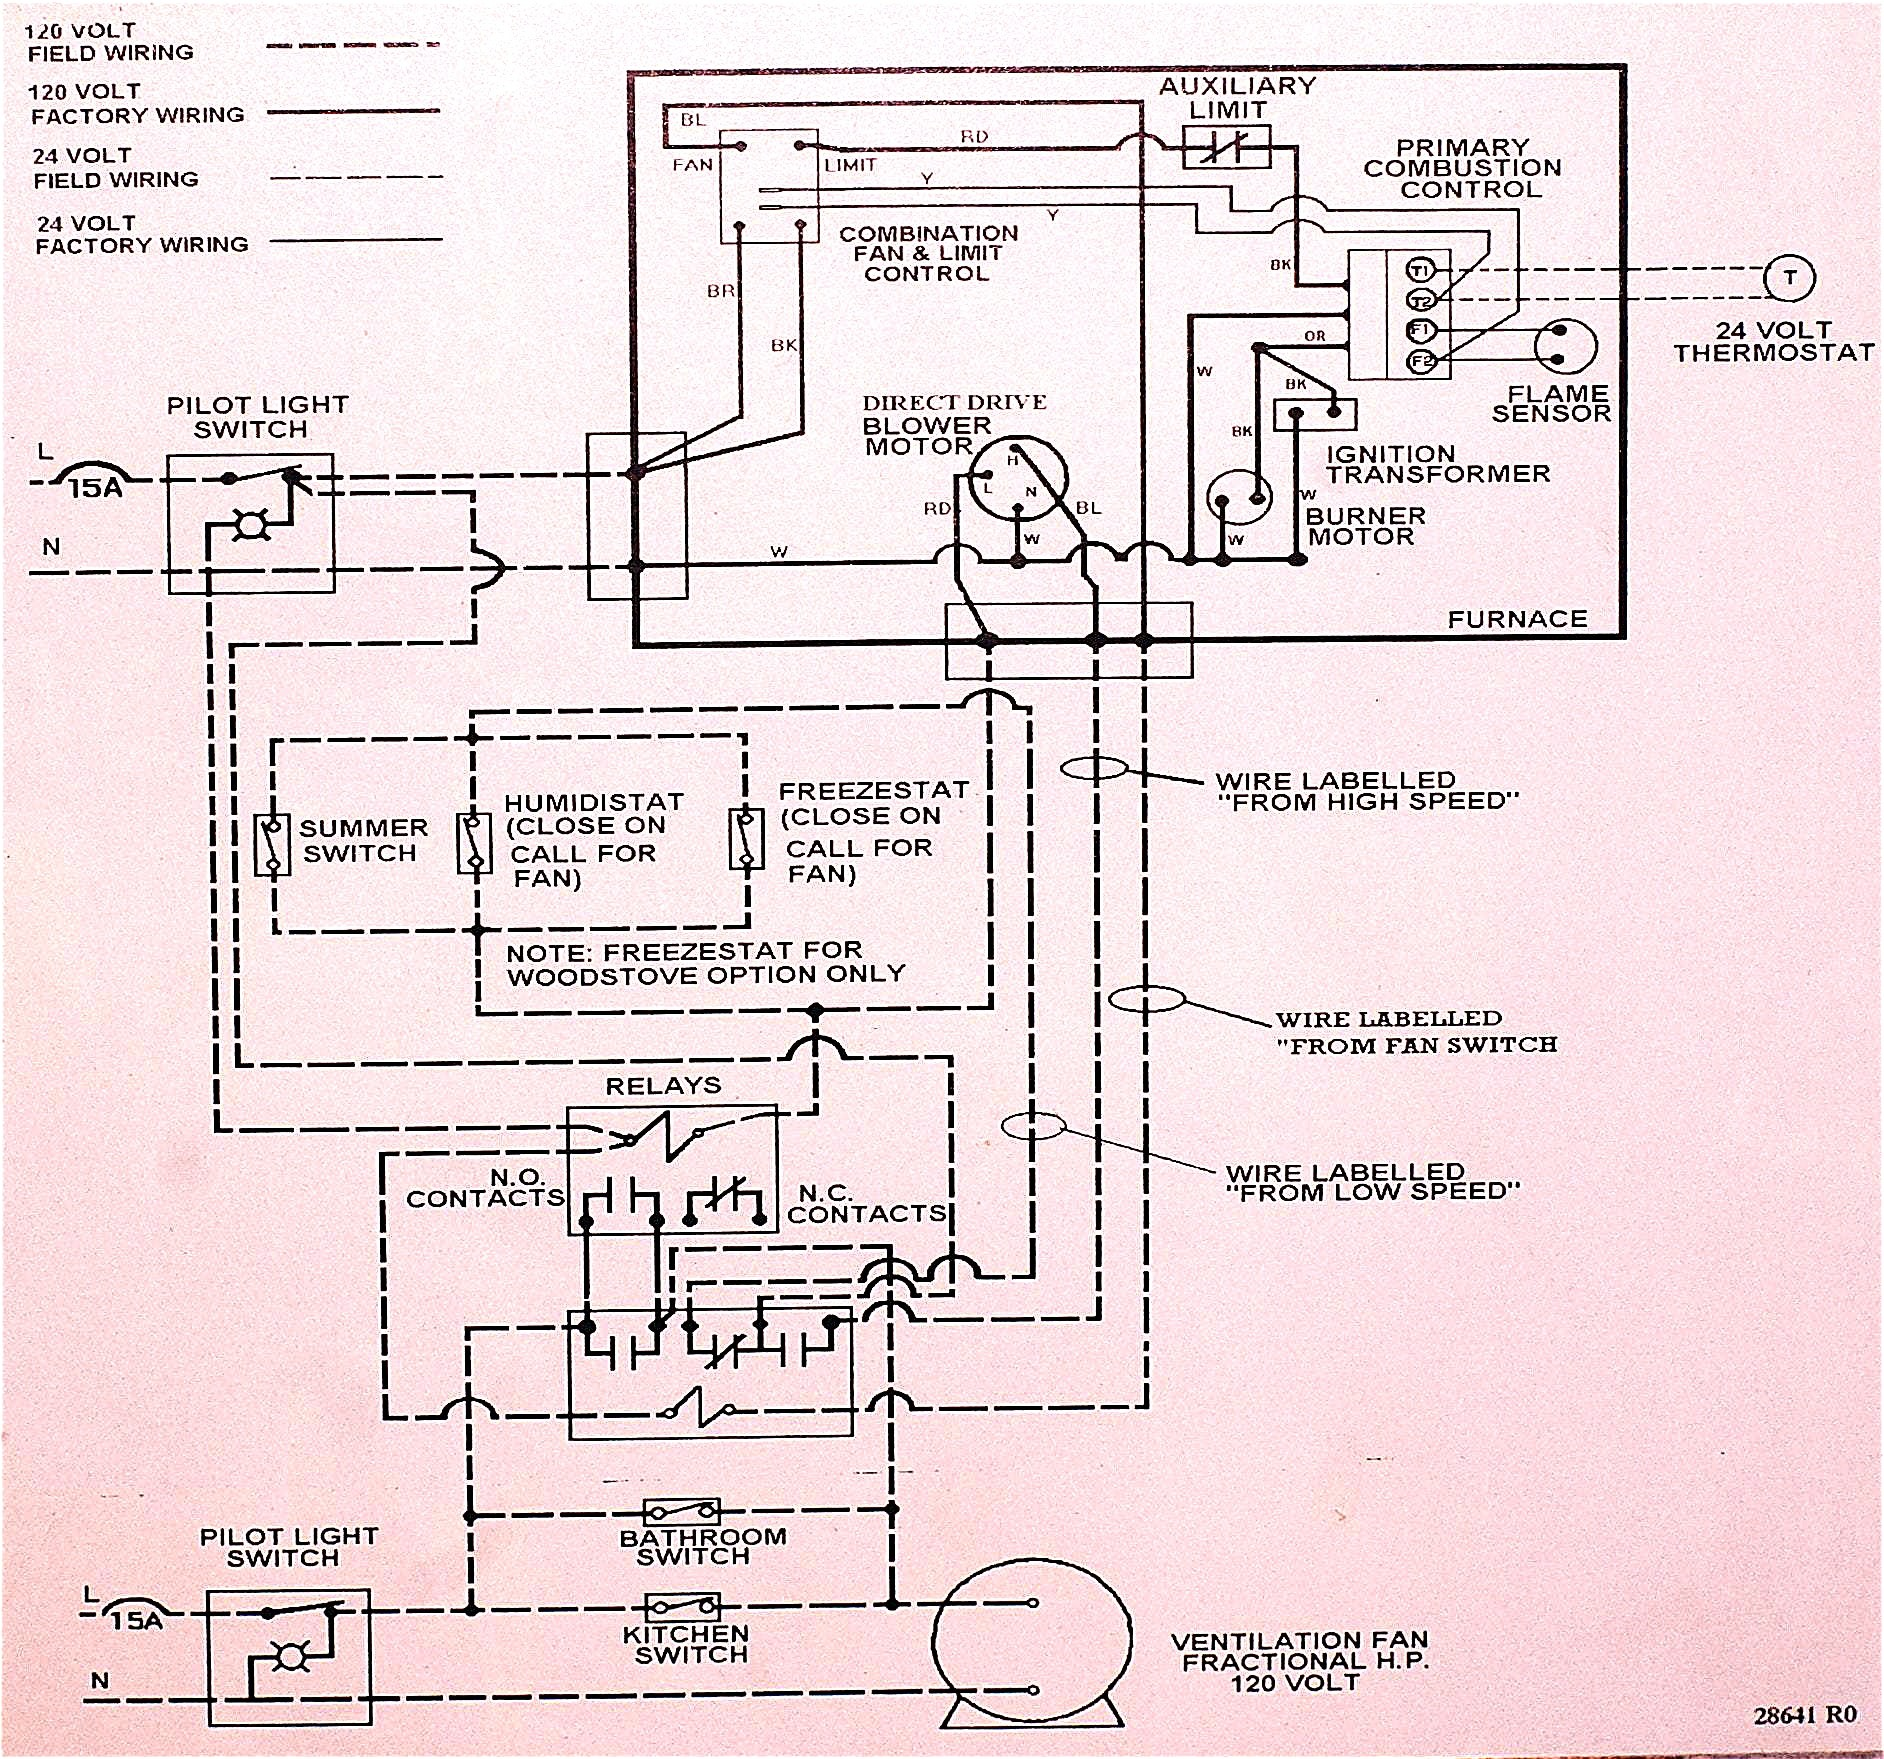 BA9E235 Coleman Heat Pump Wire Diagram | Wiring Resources wiring diagram for mobile home furnace Wiring Resources